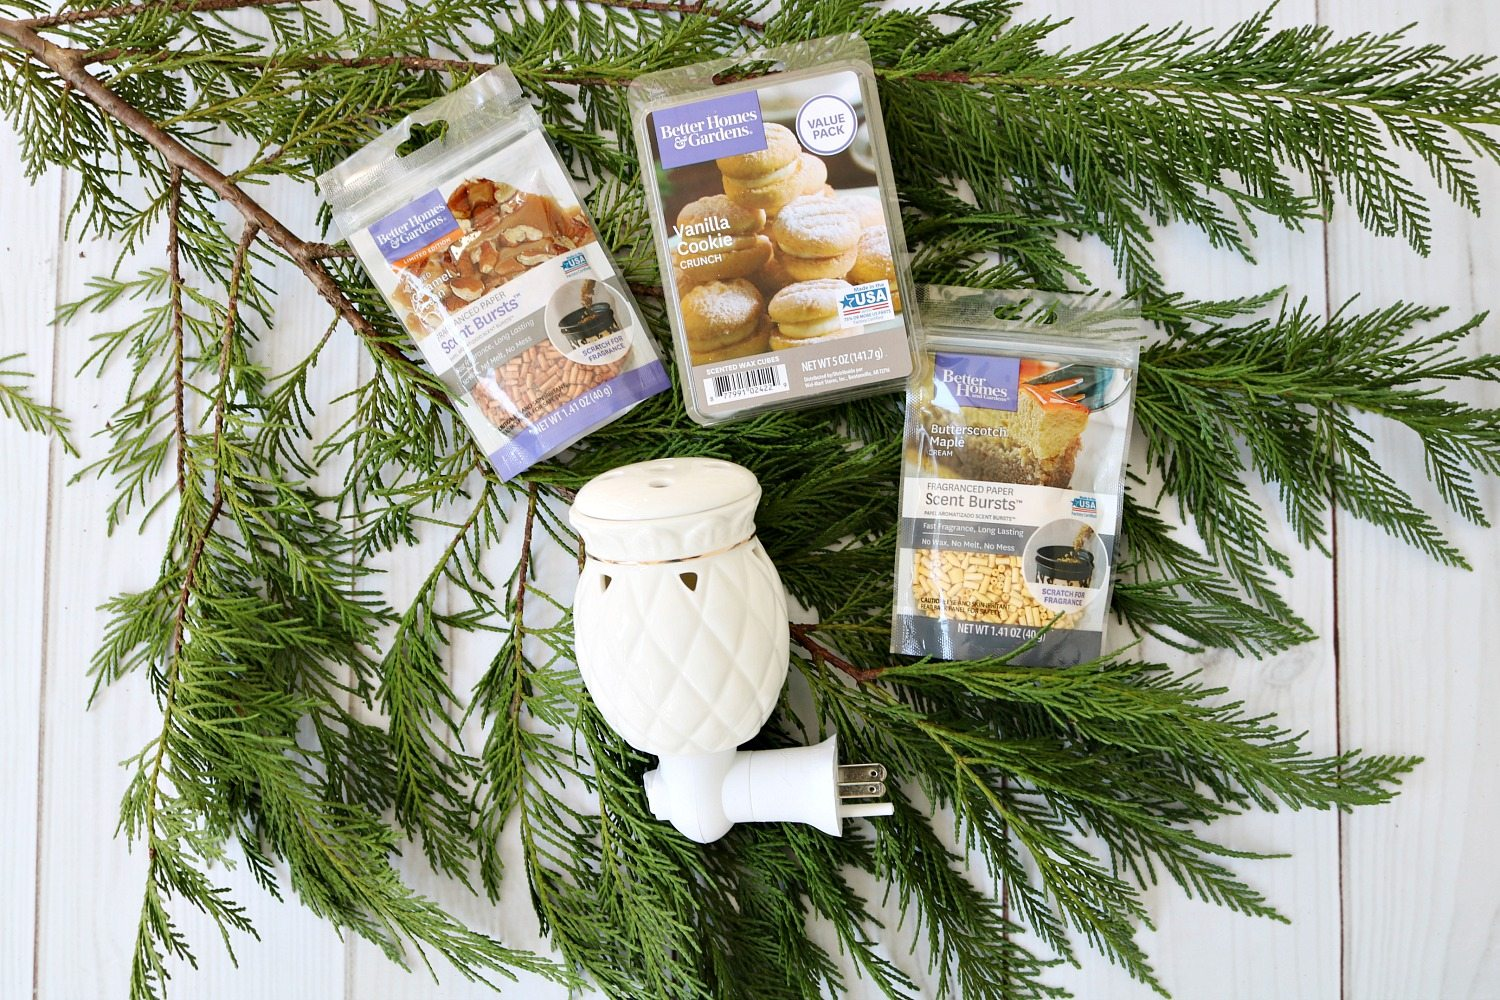 Fresh scents for gift basket